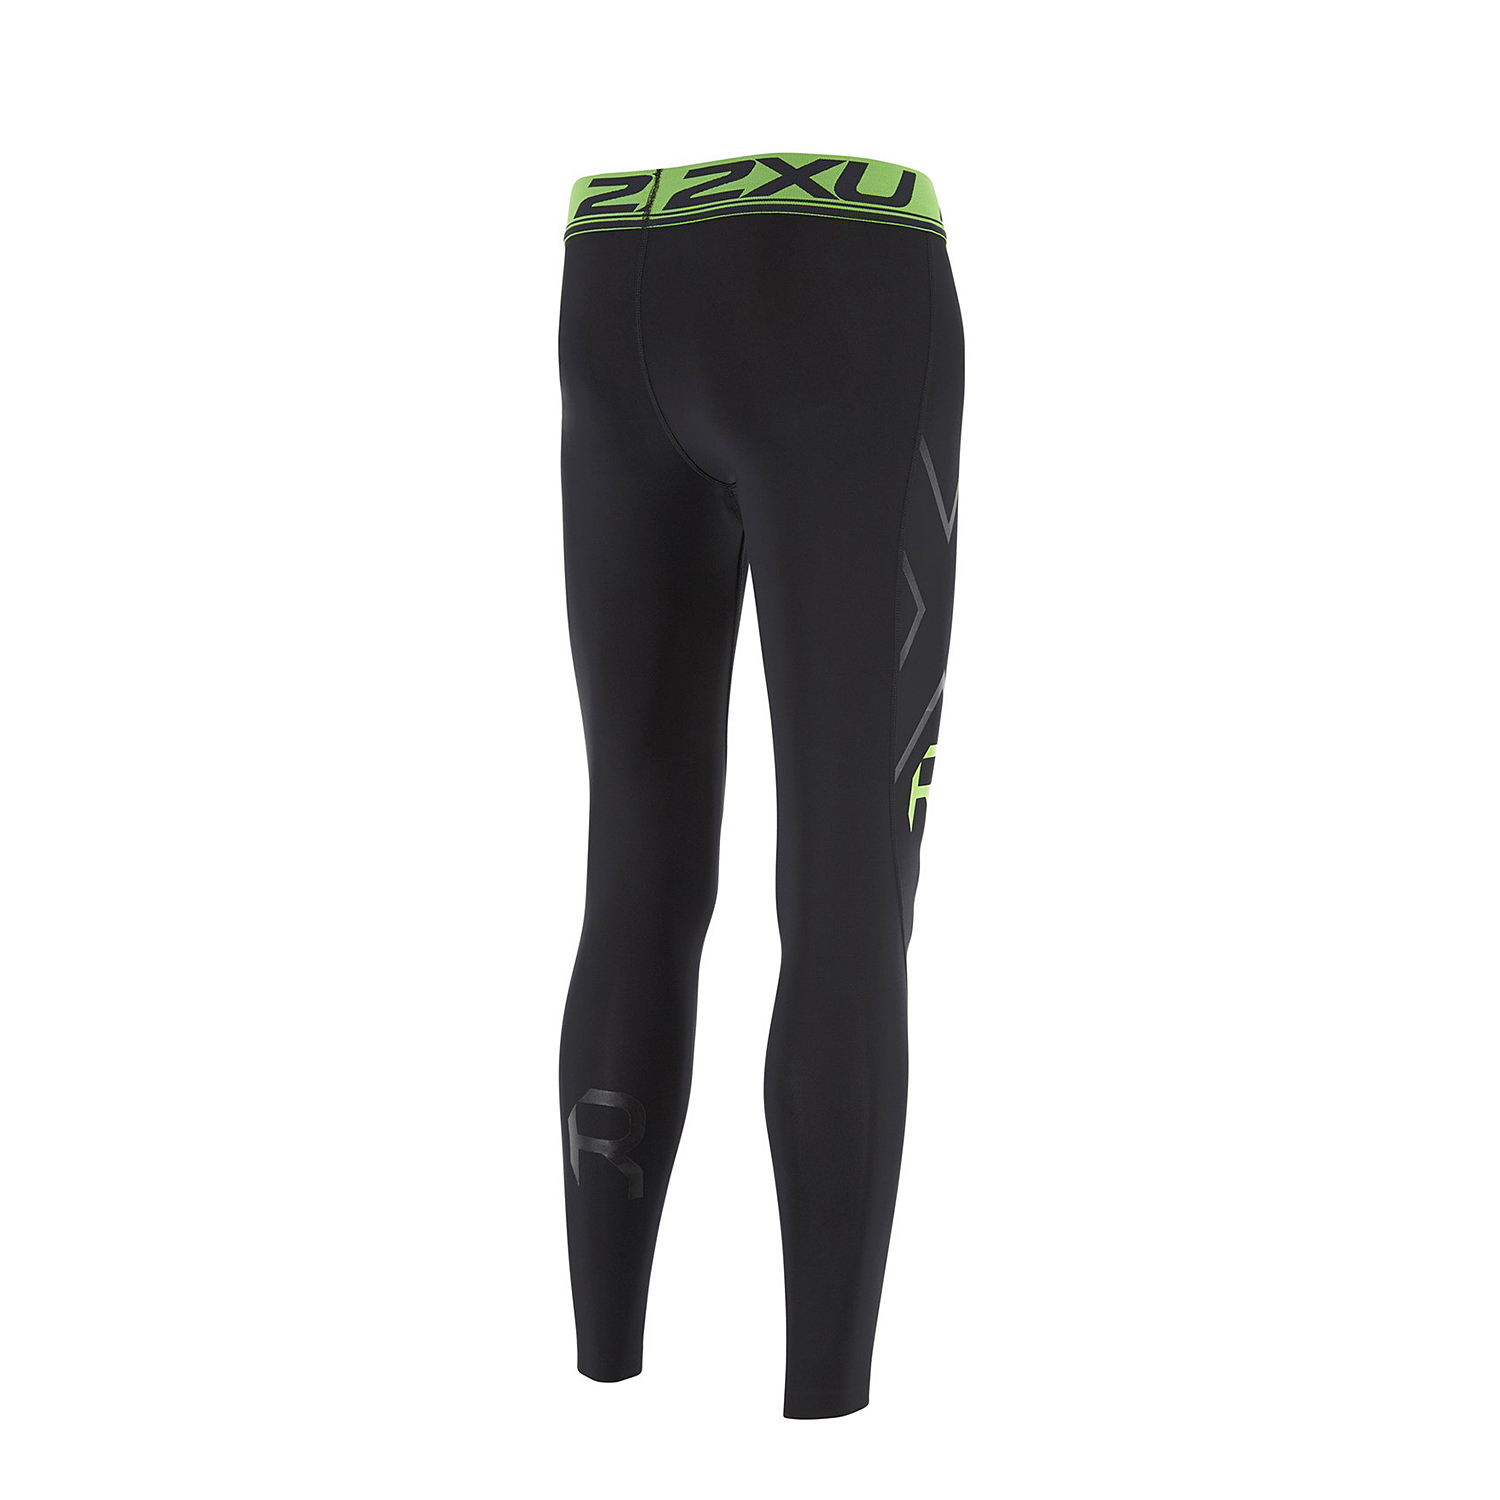 f38ce24b09 2XU Women's RECOVERY Compression Tights G2 - Walmart.com